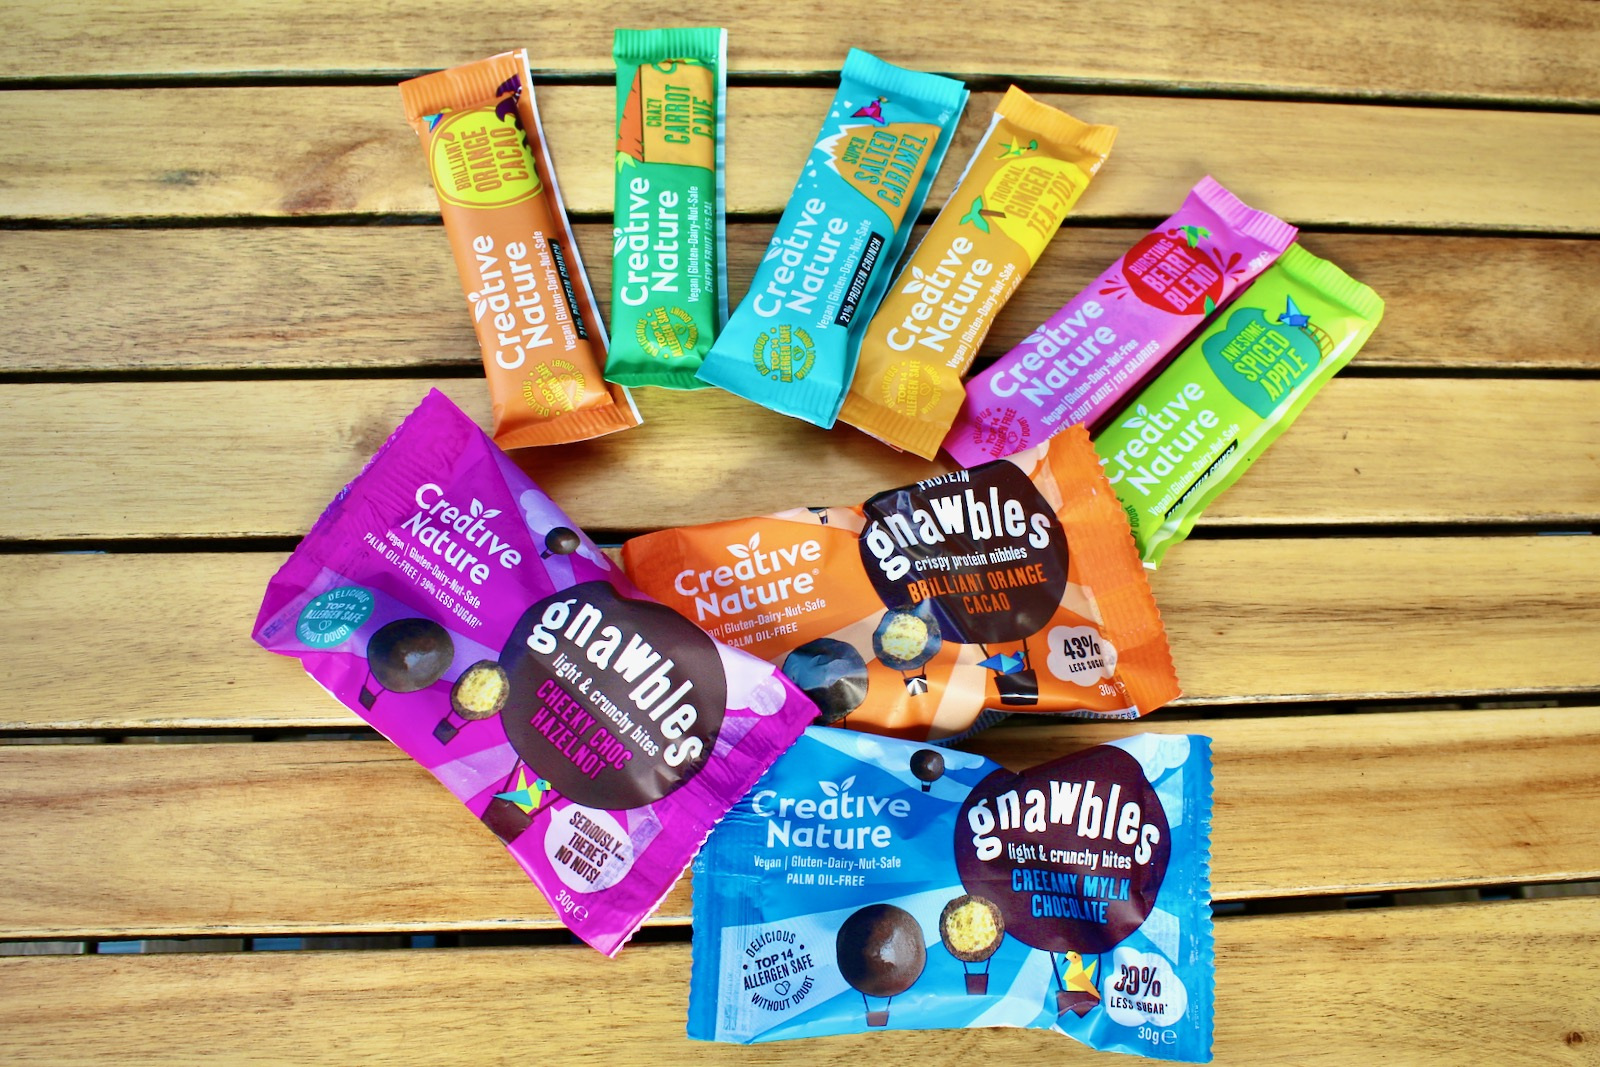 Nutrition Review – Creative Nature Energy Bars and Snacks